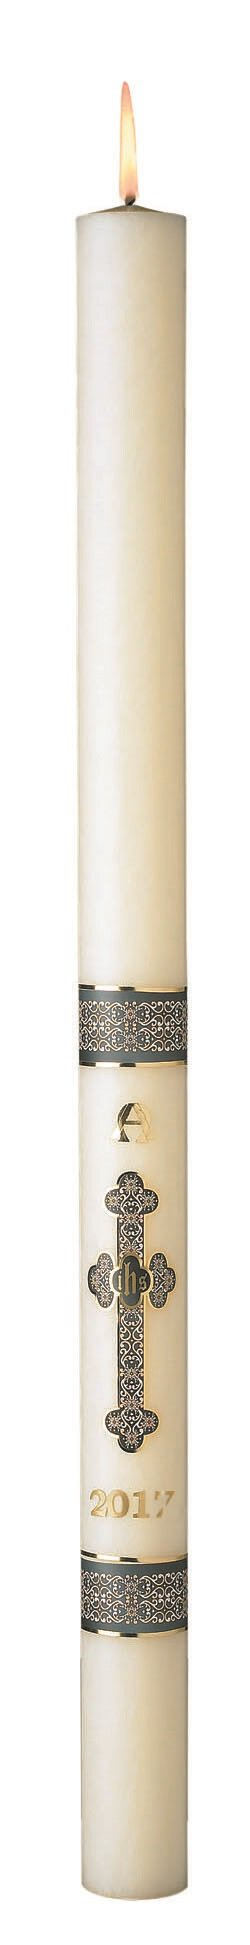 No 6 Special Budded Cross Paschal Candle